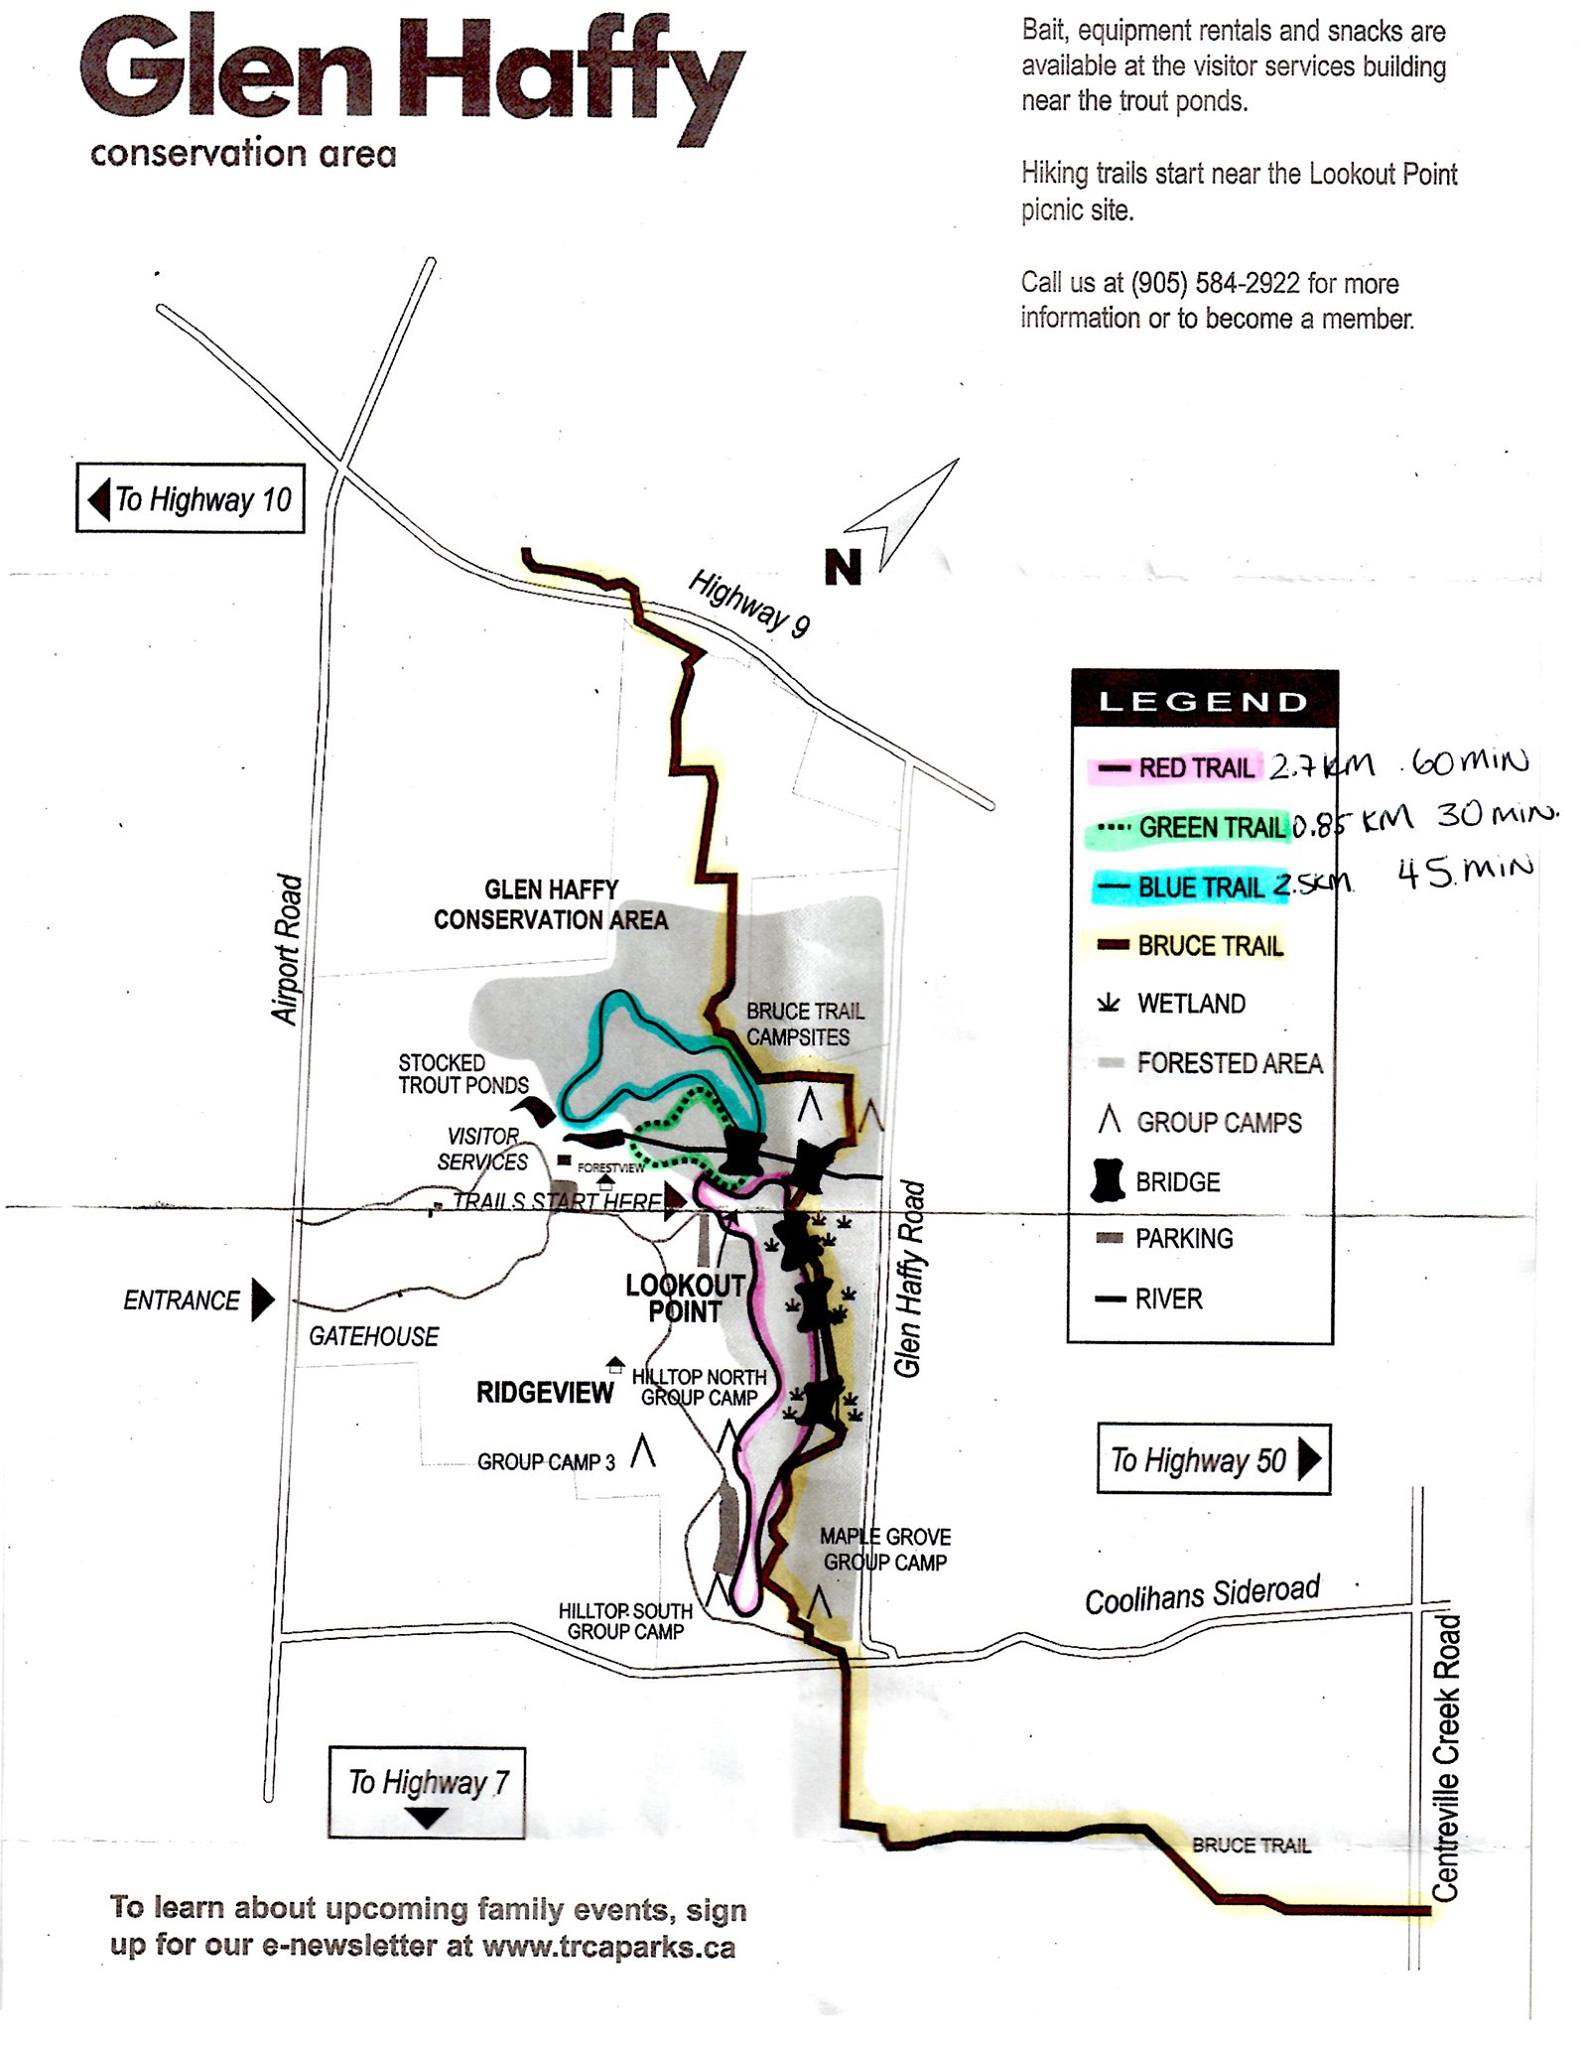 Glen Haffy Conservation Area Map Lifeology 101